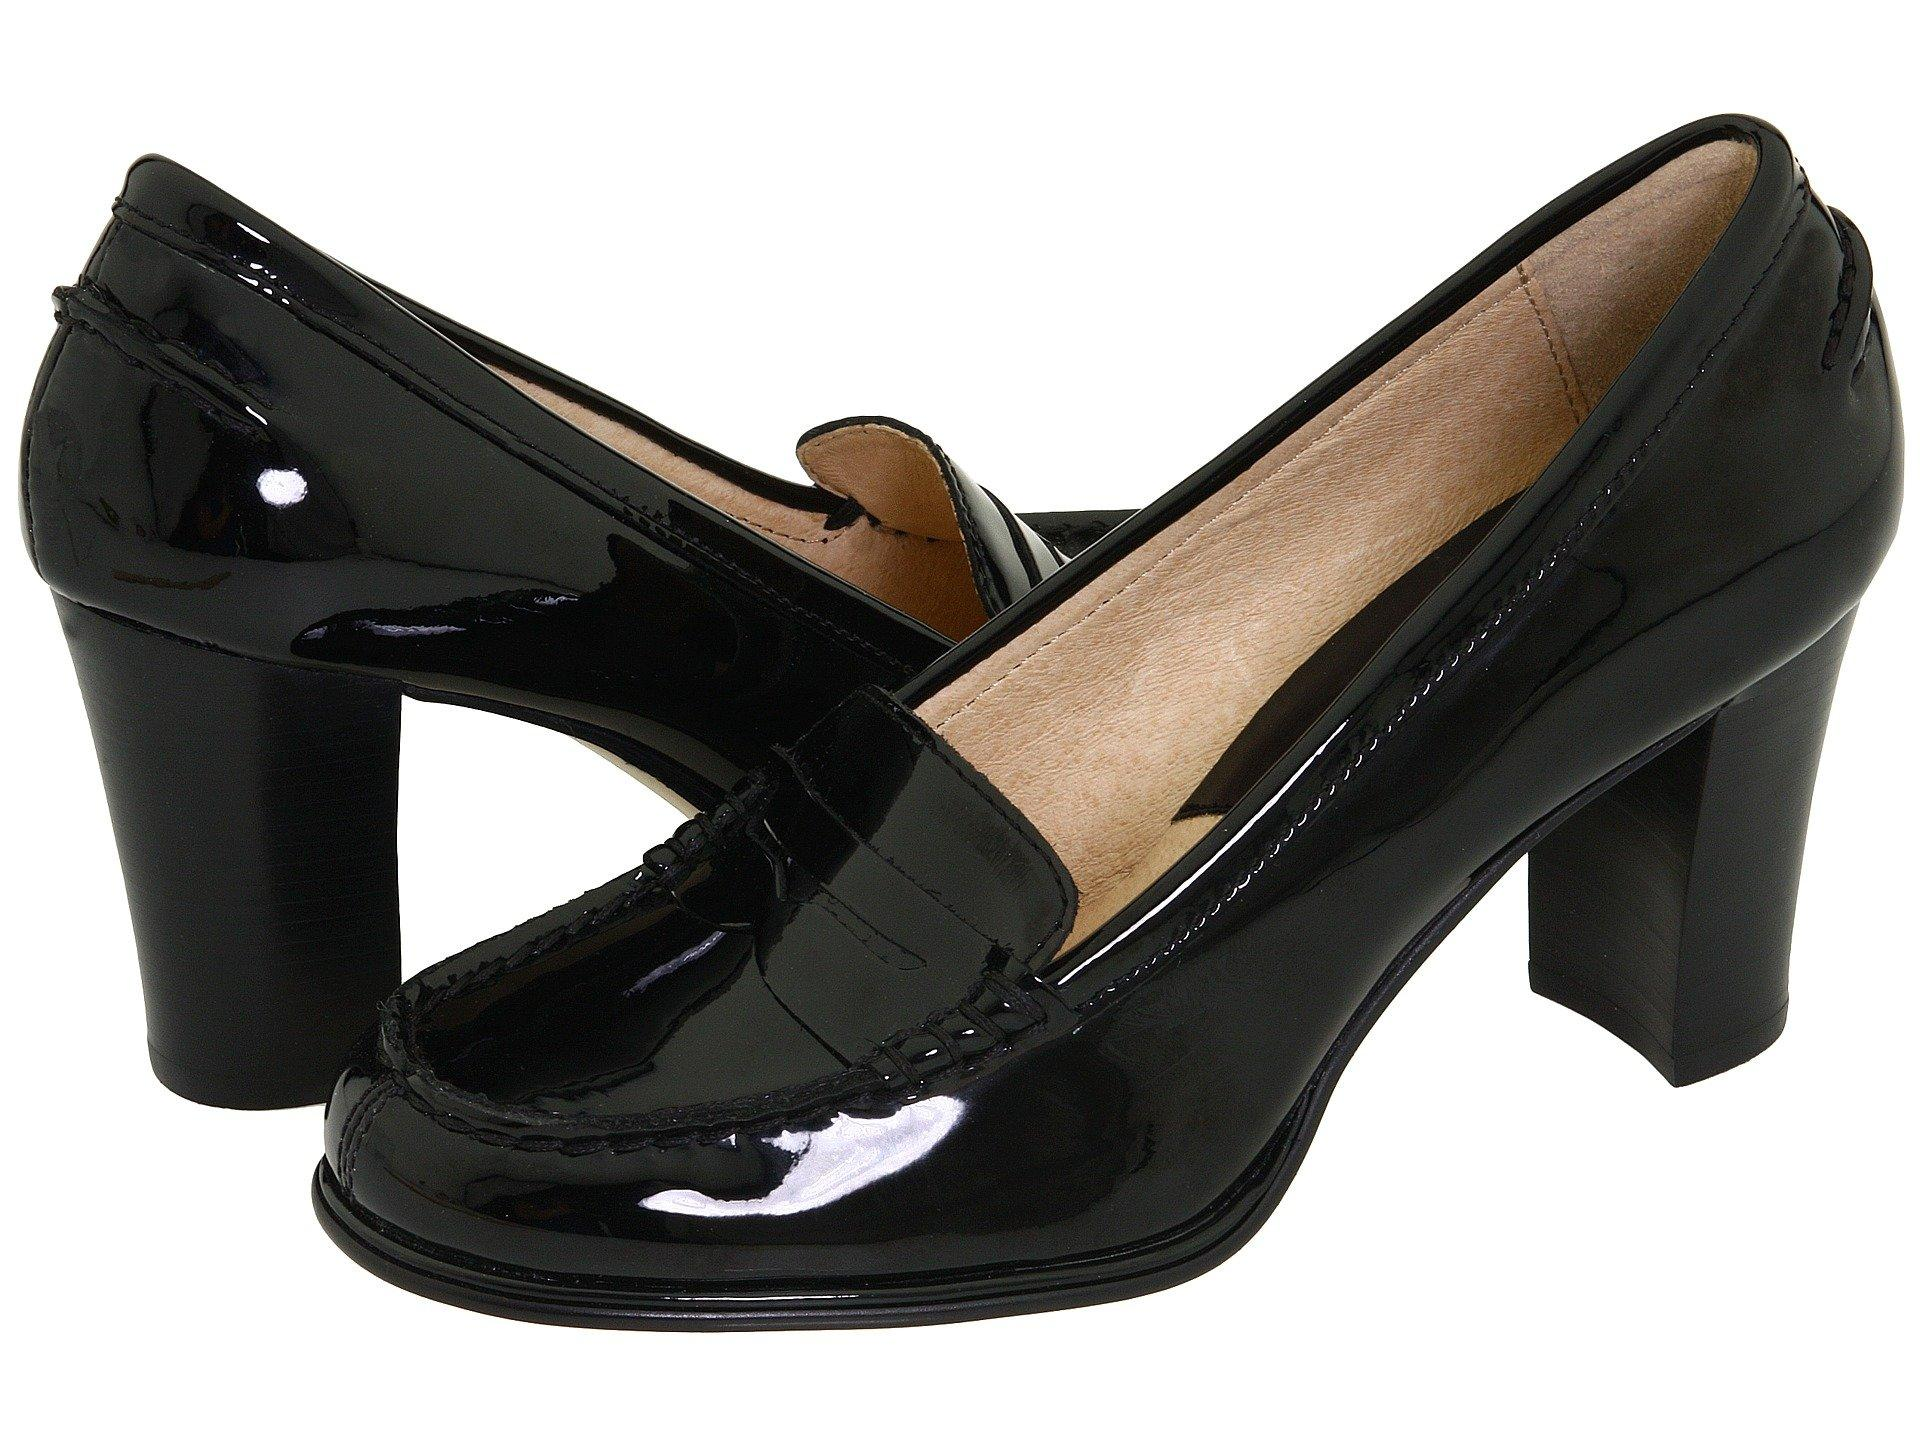 a90625837da Lyst - MICHAEL Michael Kors Bayville Loafer in Black